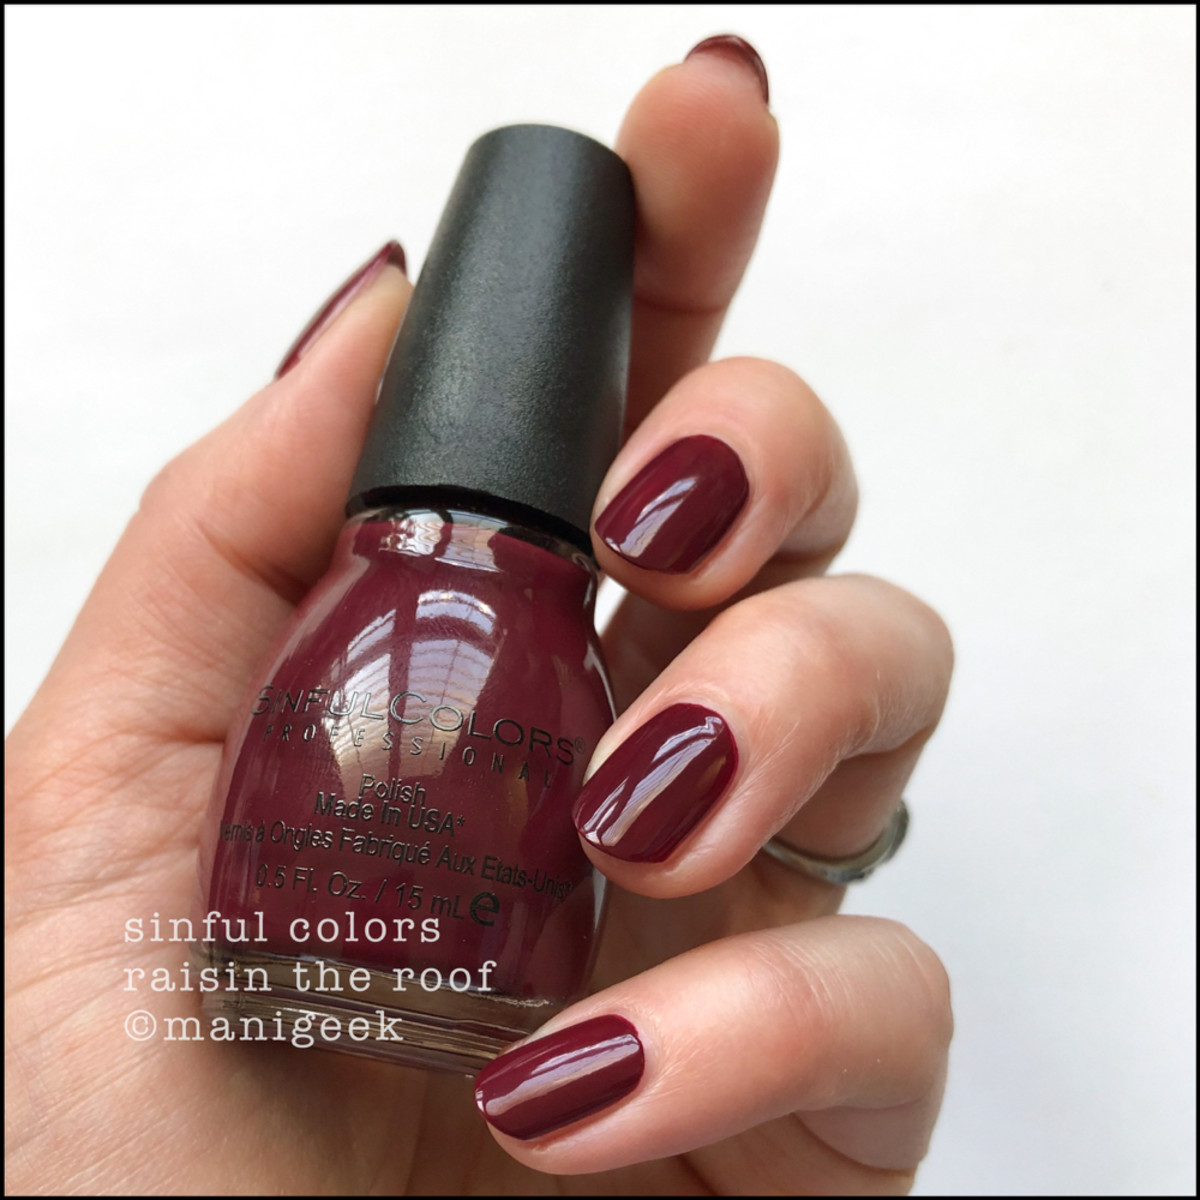 Sinful Colors Raisin the Roof - Sinful Colors Swatches 2019